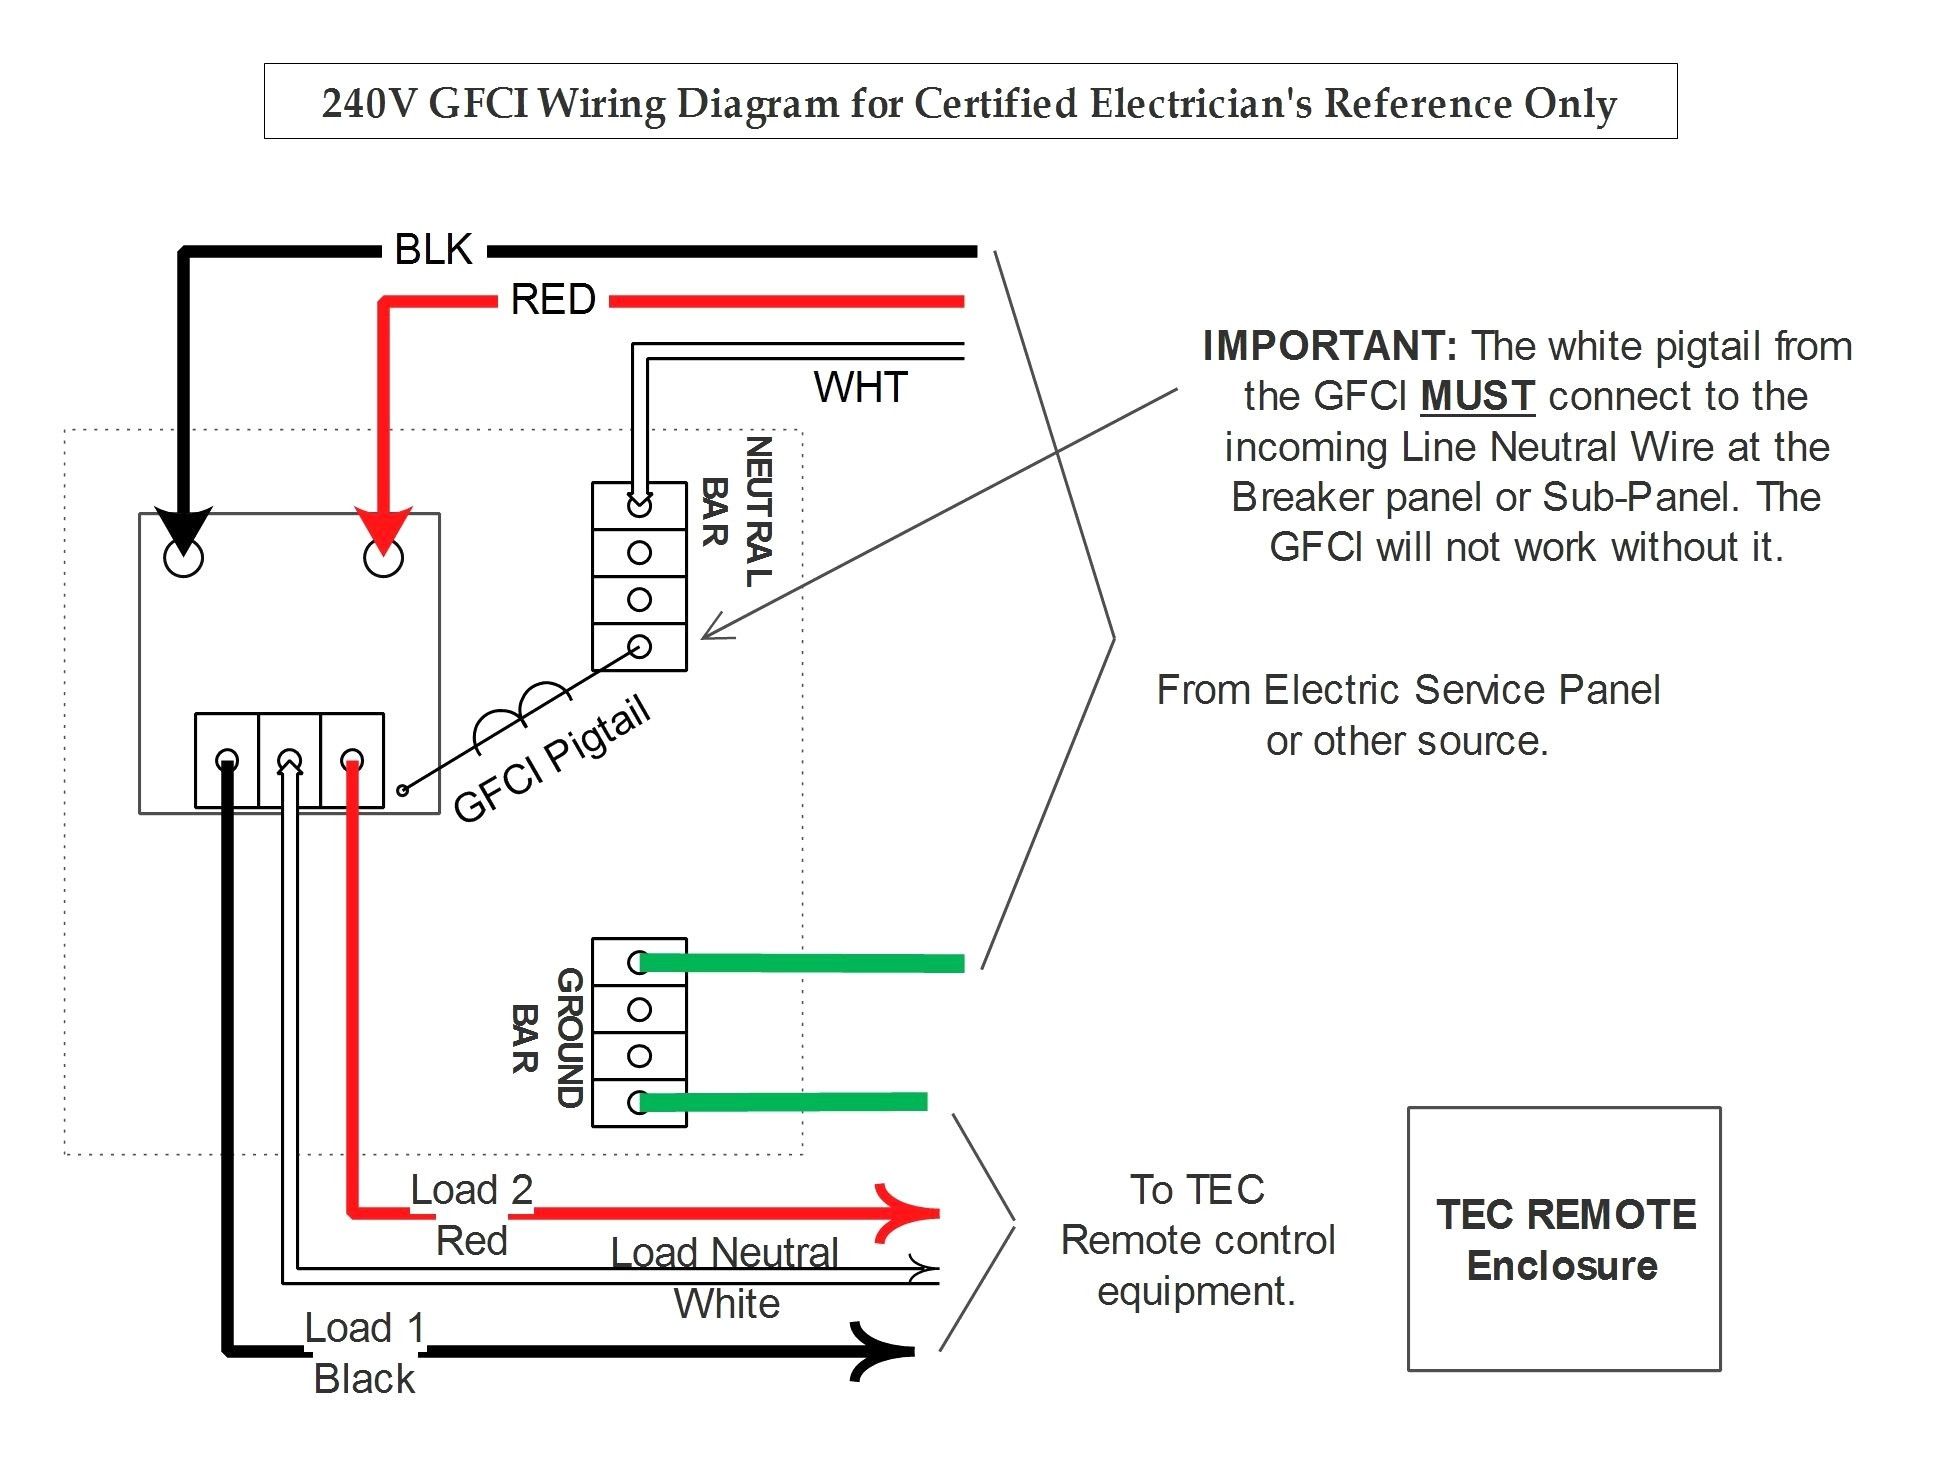 shaw box hoist wiring diagram Collection-Shaw Box Hoist Wiring Diagram Hoist Wiring Diagram Free Image About Wiring Diagram Wire Center 8-g